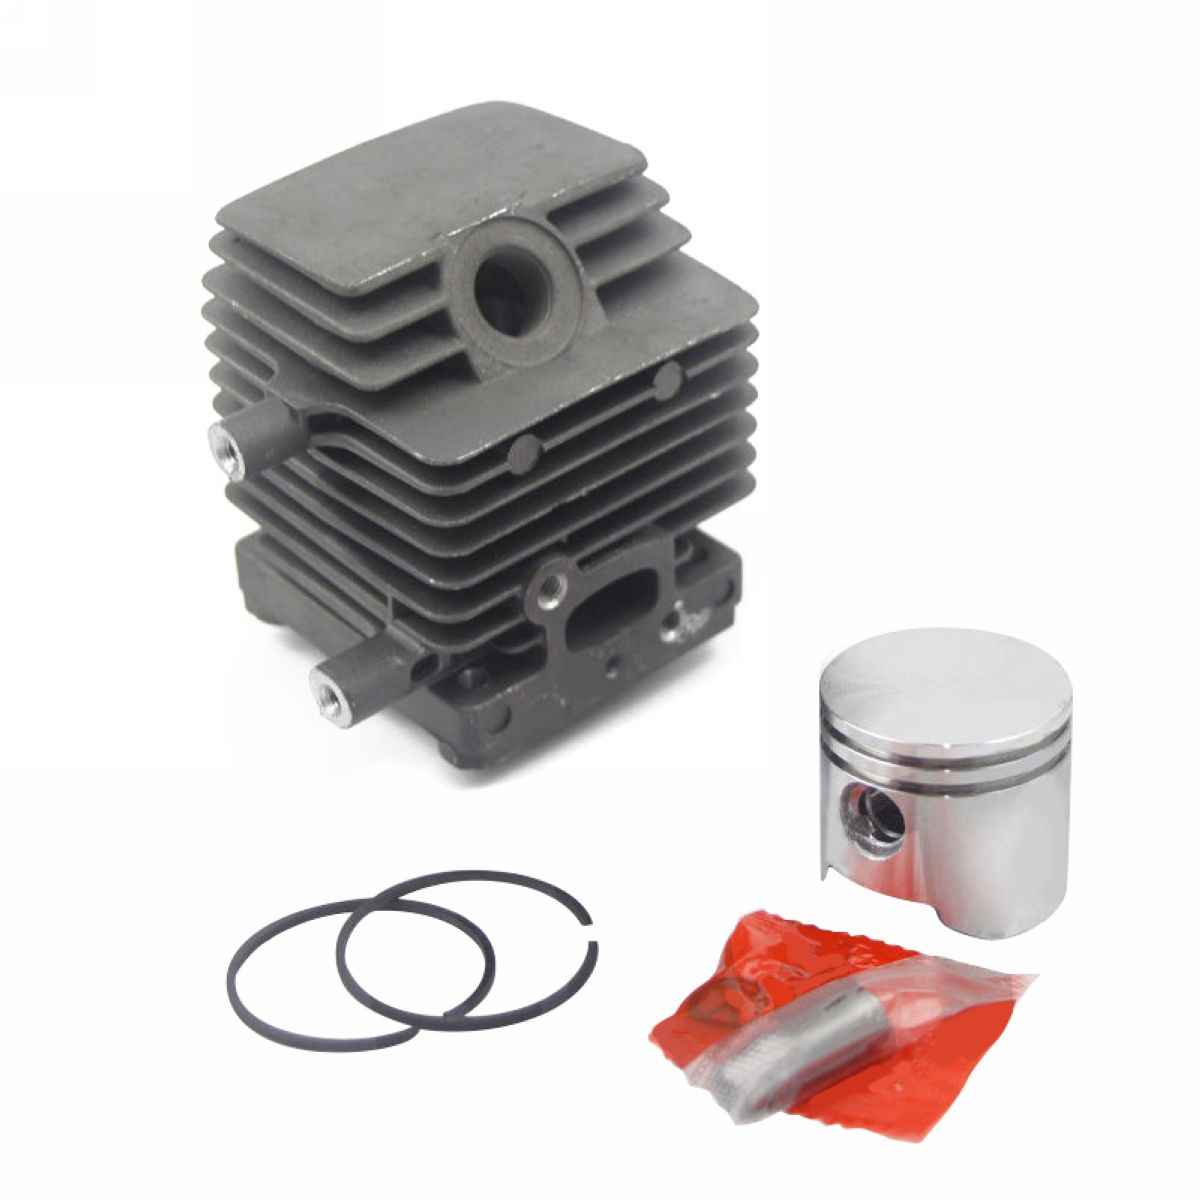 Durable 34mm Cylinder Piston Kit Ring For FS75 FS80 FS85 SP85 FC75 FC85 Chainsaw Parts Mayitr Garden Tools